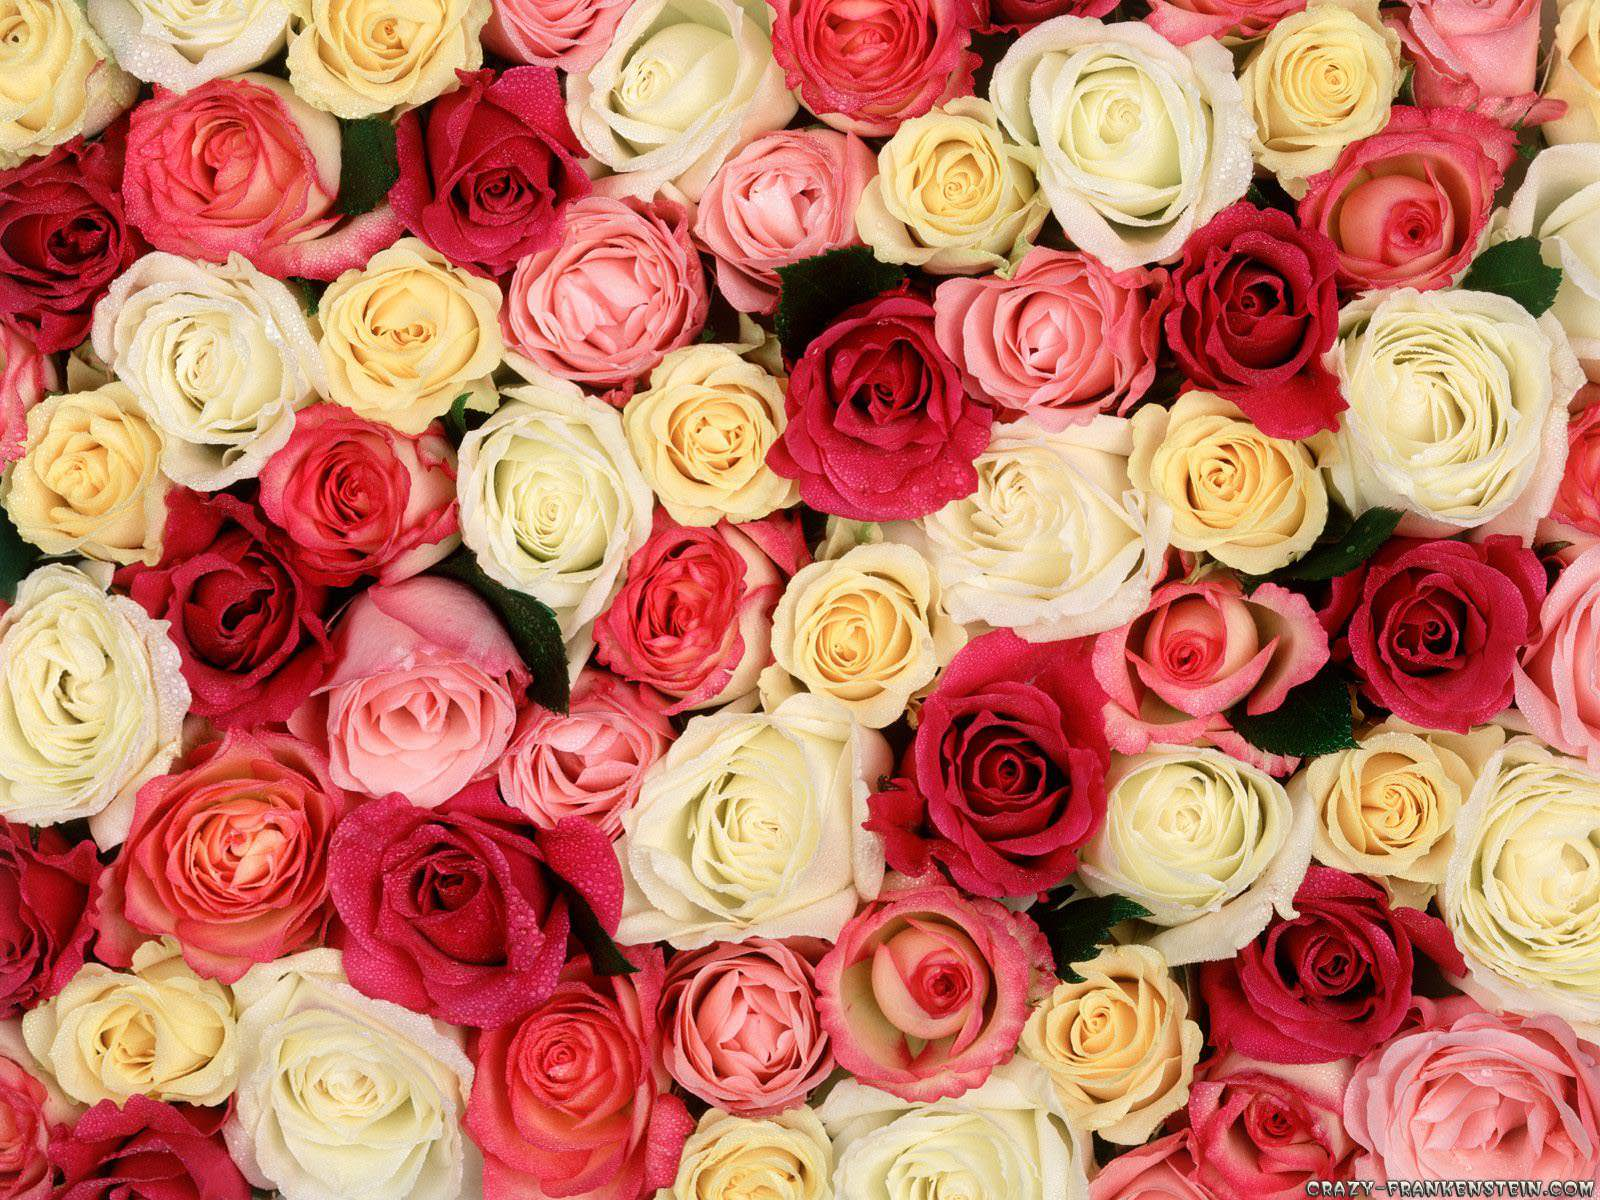 29+ Roses Backgrounds, Wallpapers, Images, Pictures